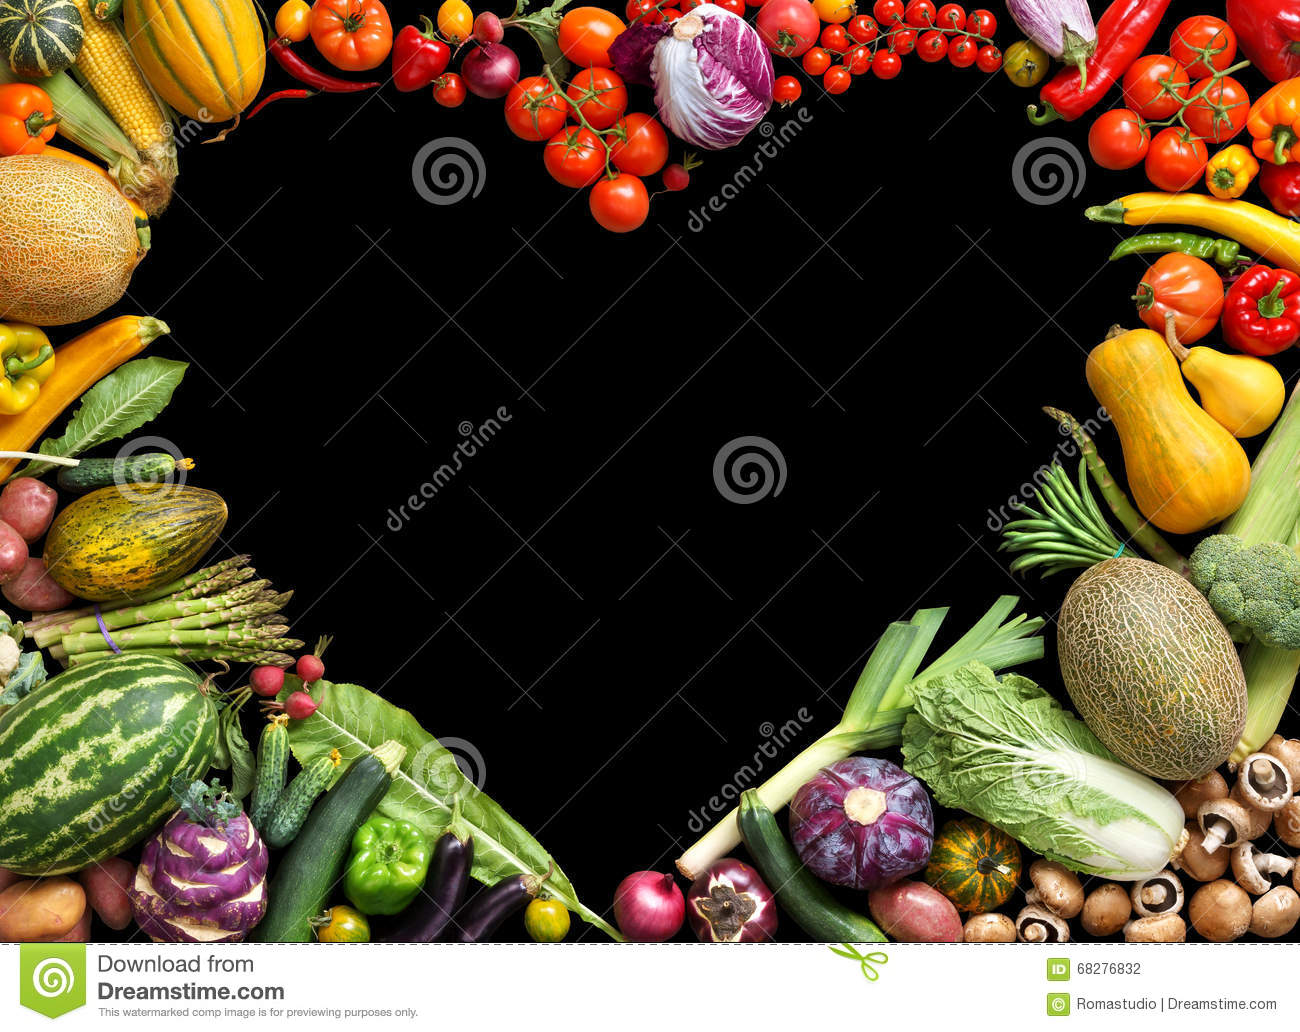 Deluxe Heart symbol. Food photography of heart made from different fruits and vegetables